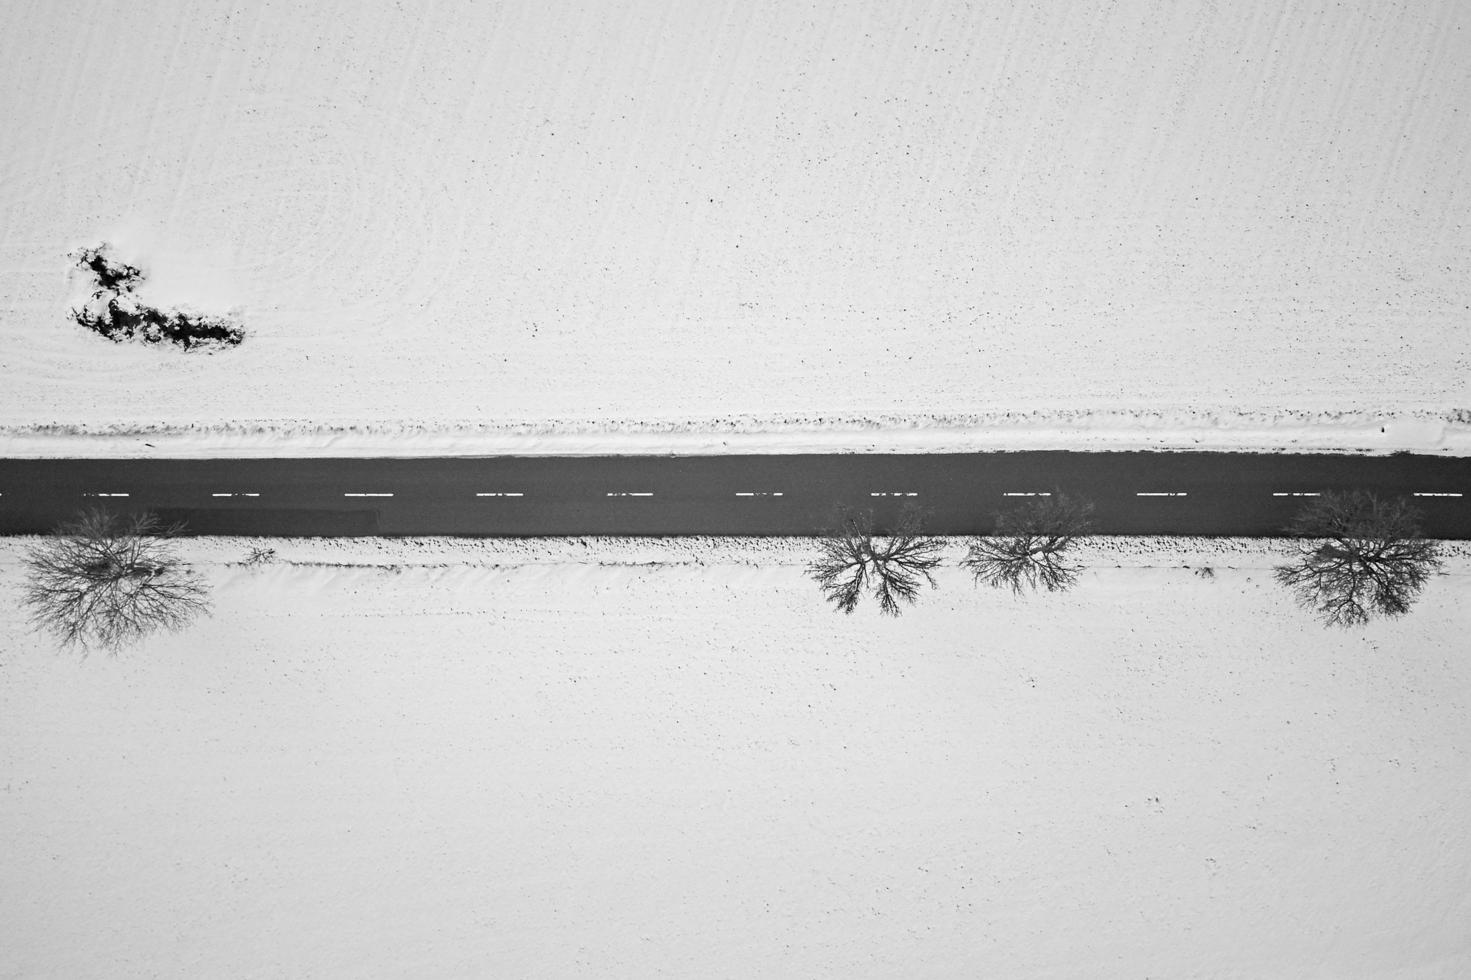 Top-down view of a road in the middle of snow photo